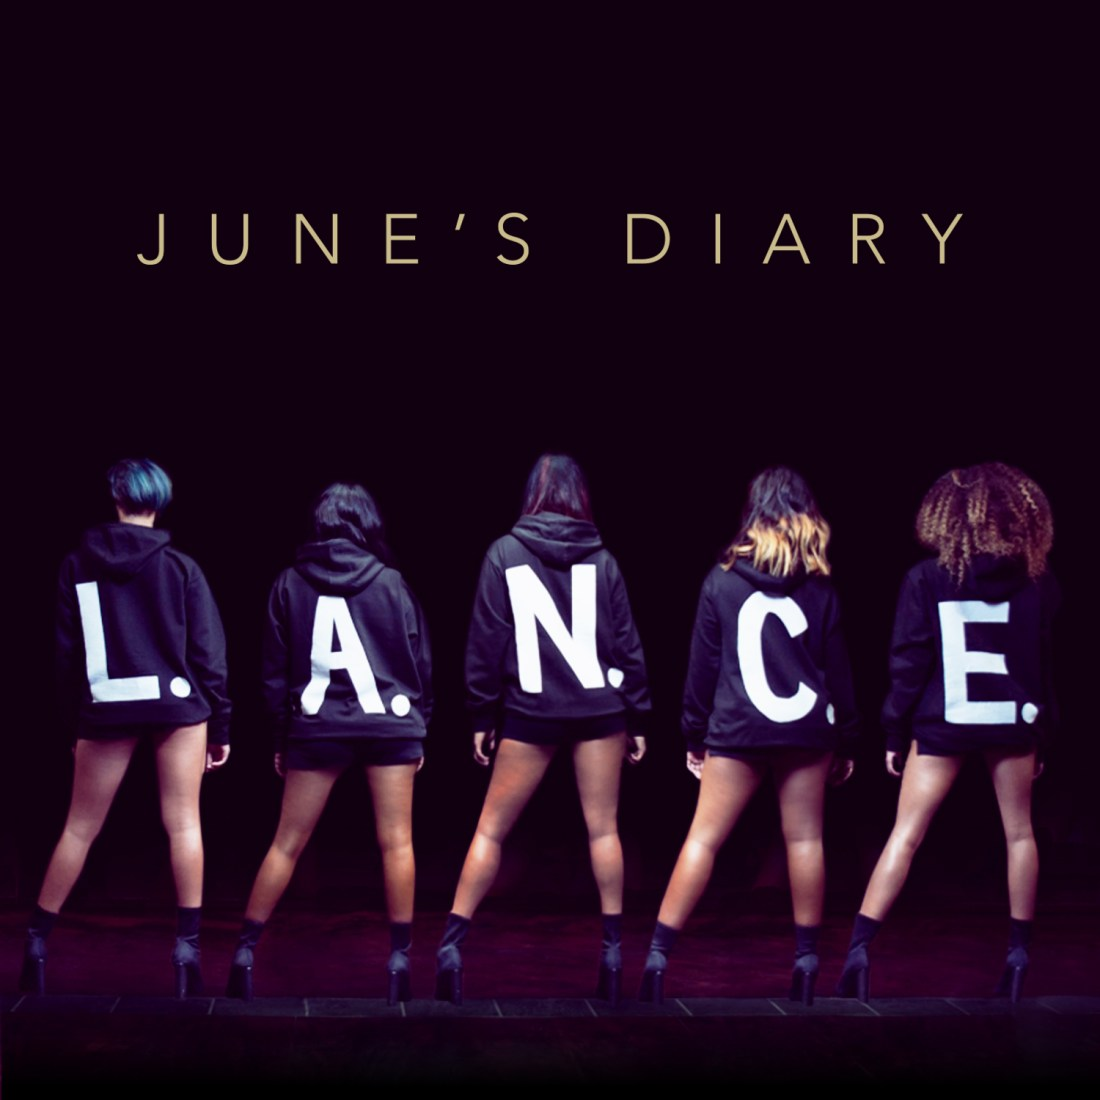 JD_LANCE_Cover11